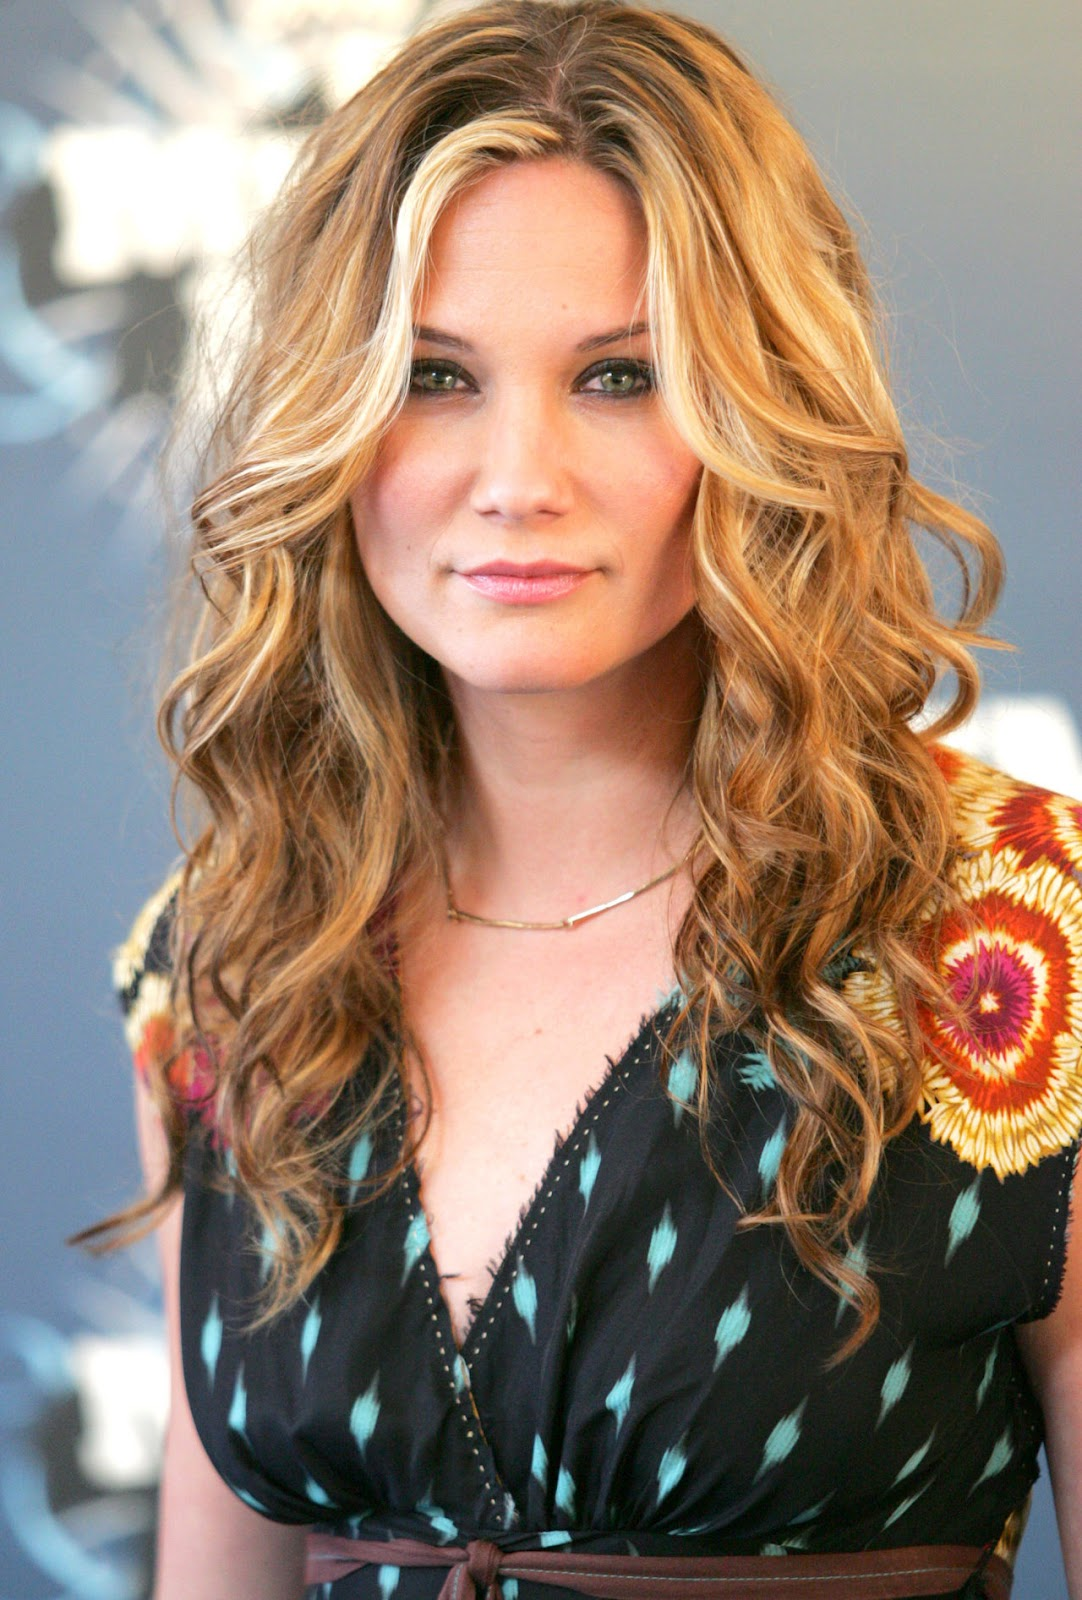 Jennifer Nettles Hairstyle Trends Jennifer Nettles Hairstyle Trends